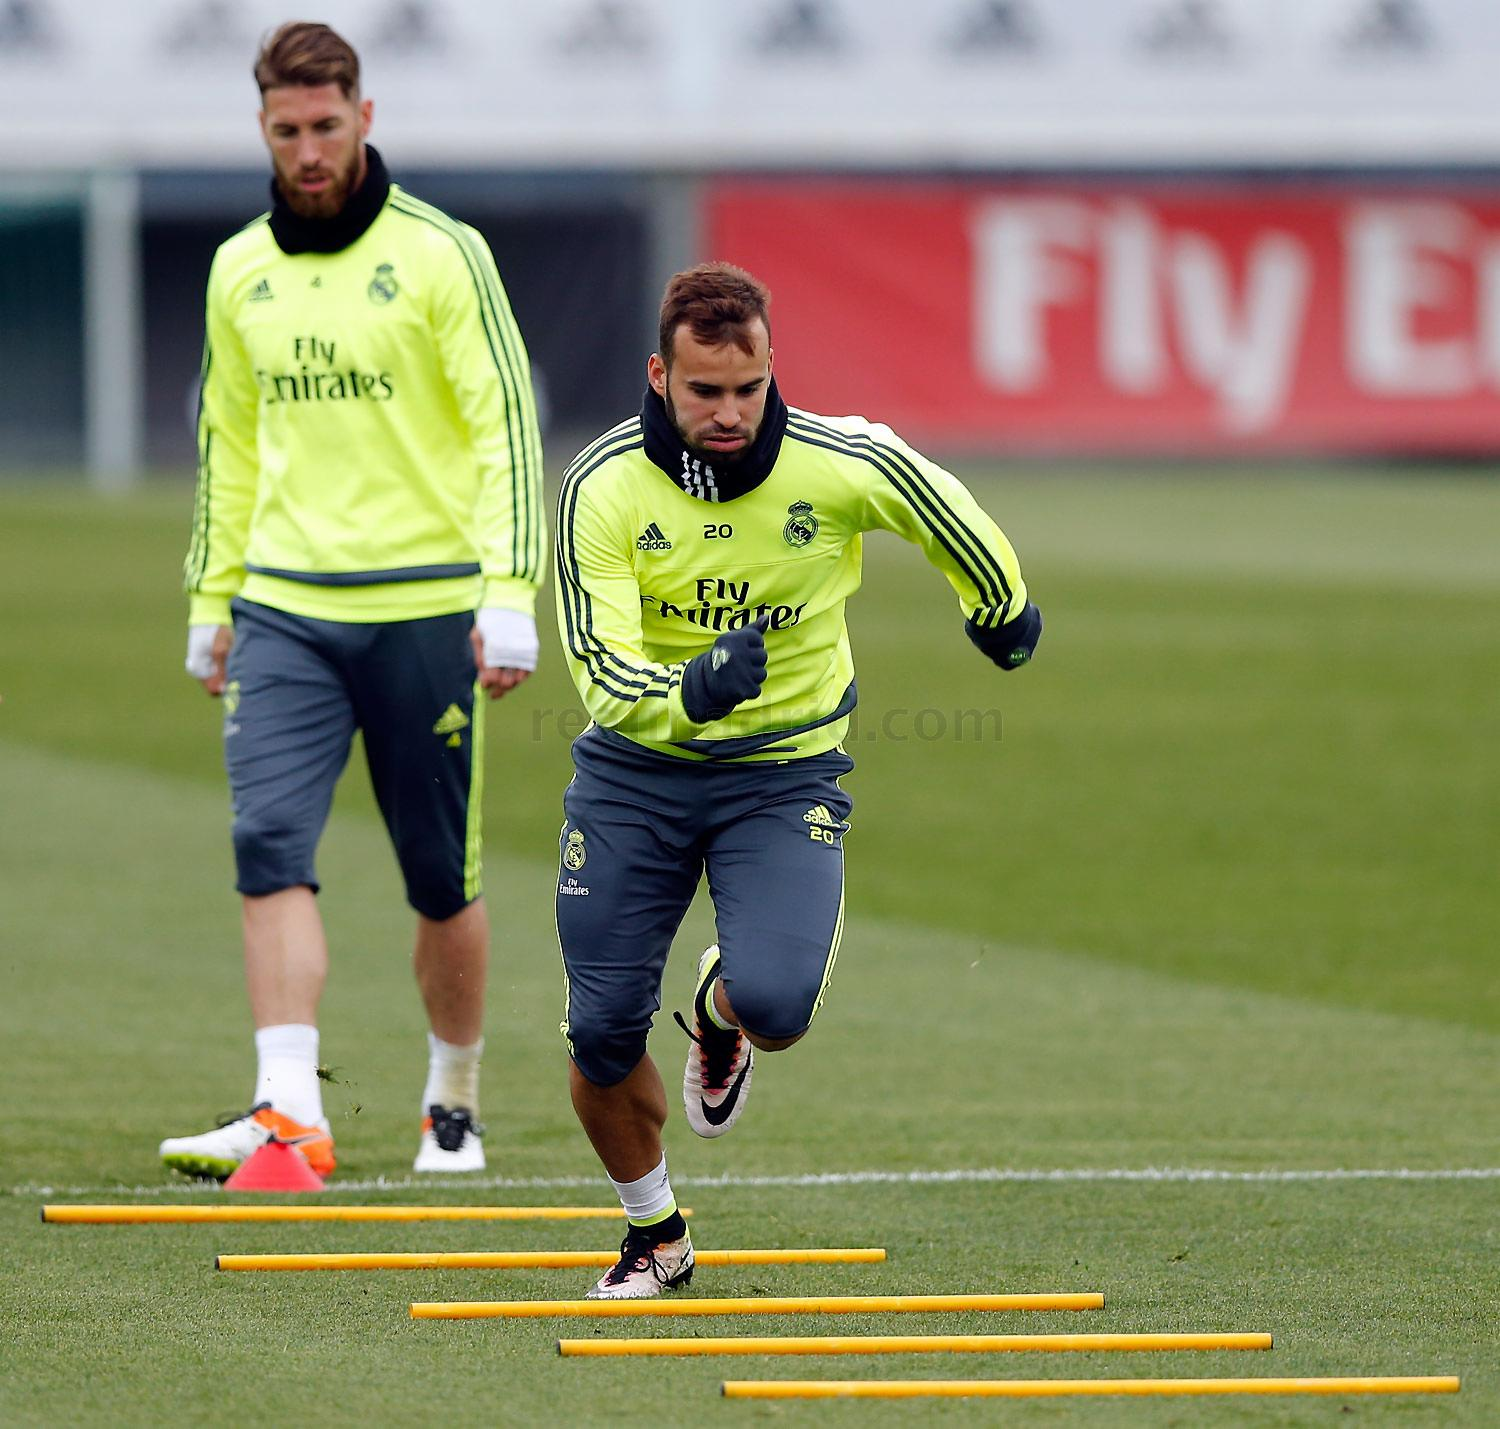 Real Madrid - Entrenamiento del Real Madrid - 19-04-2016